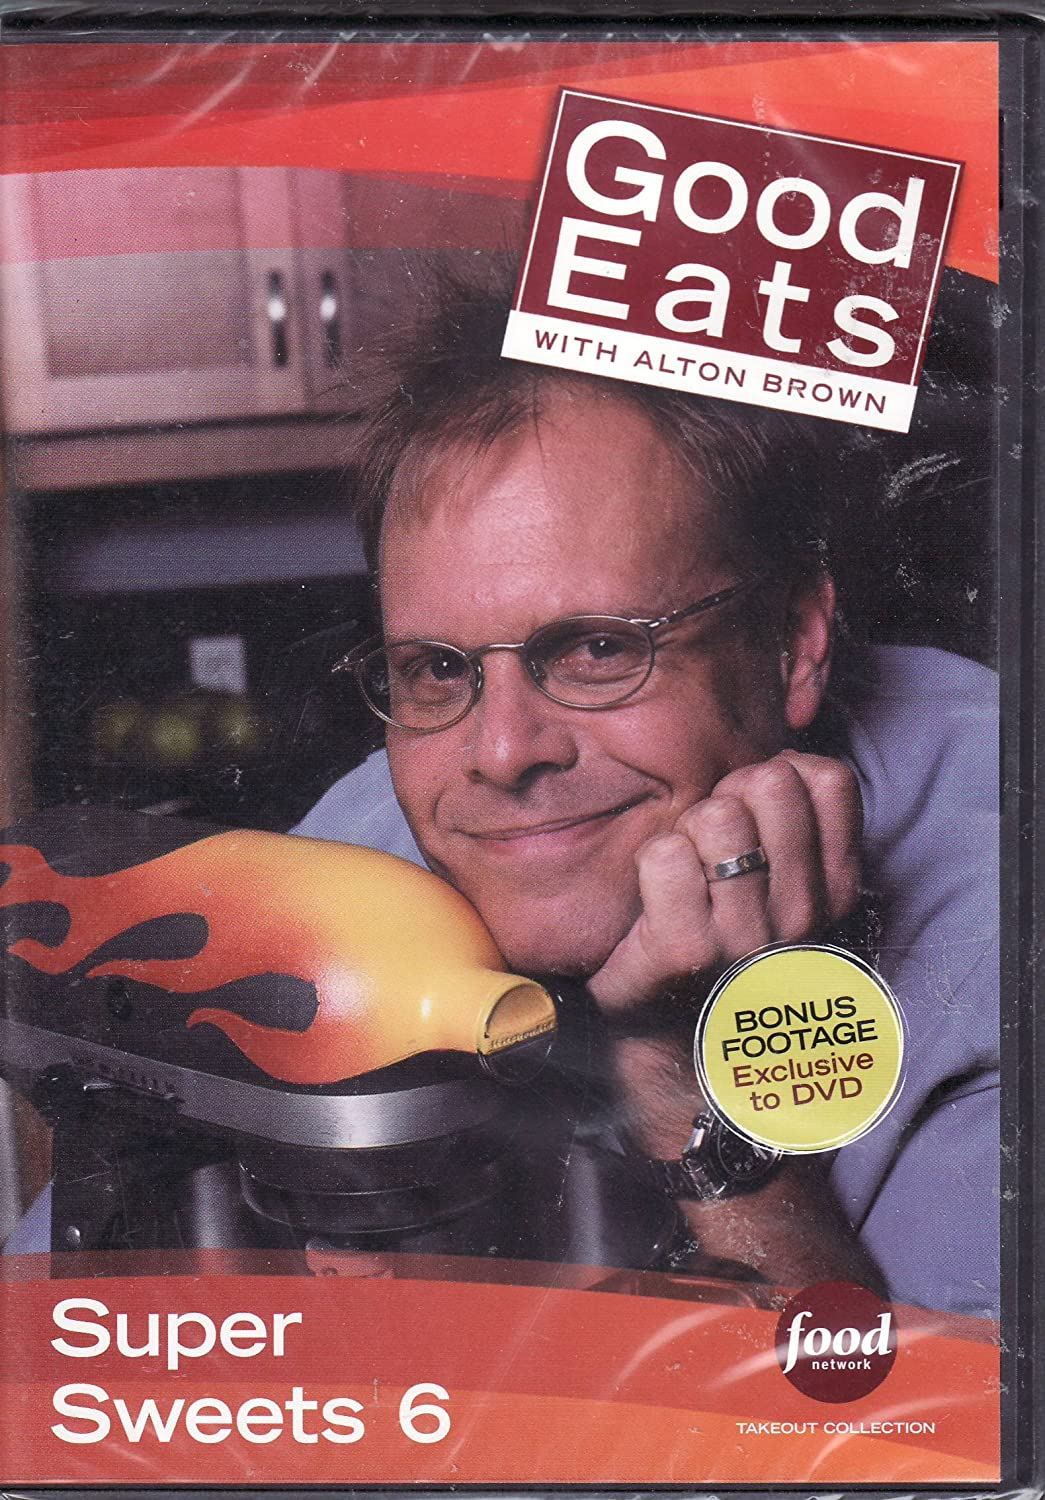 Food Network Takeout Collection DVD - Good Eats With Alton Brown - Super Sweets 6 Art of Darkness 3 / Deep Space Slime / Puddin Head Blues